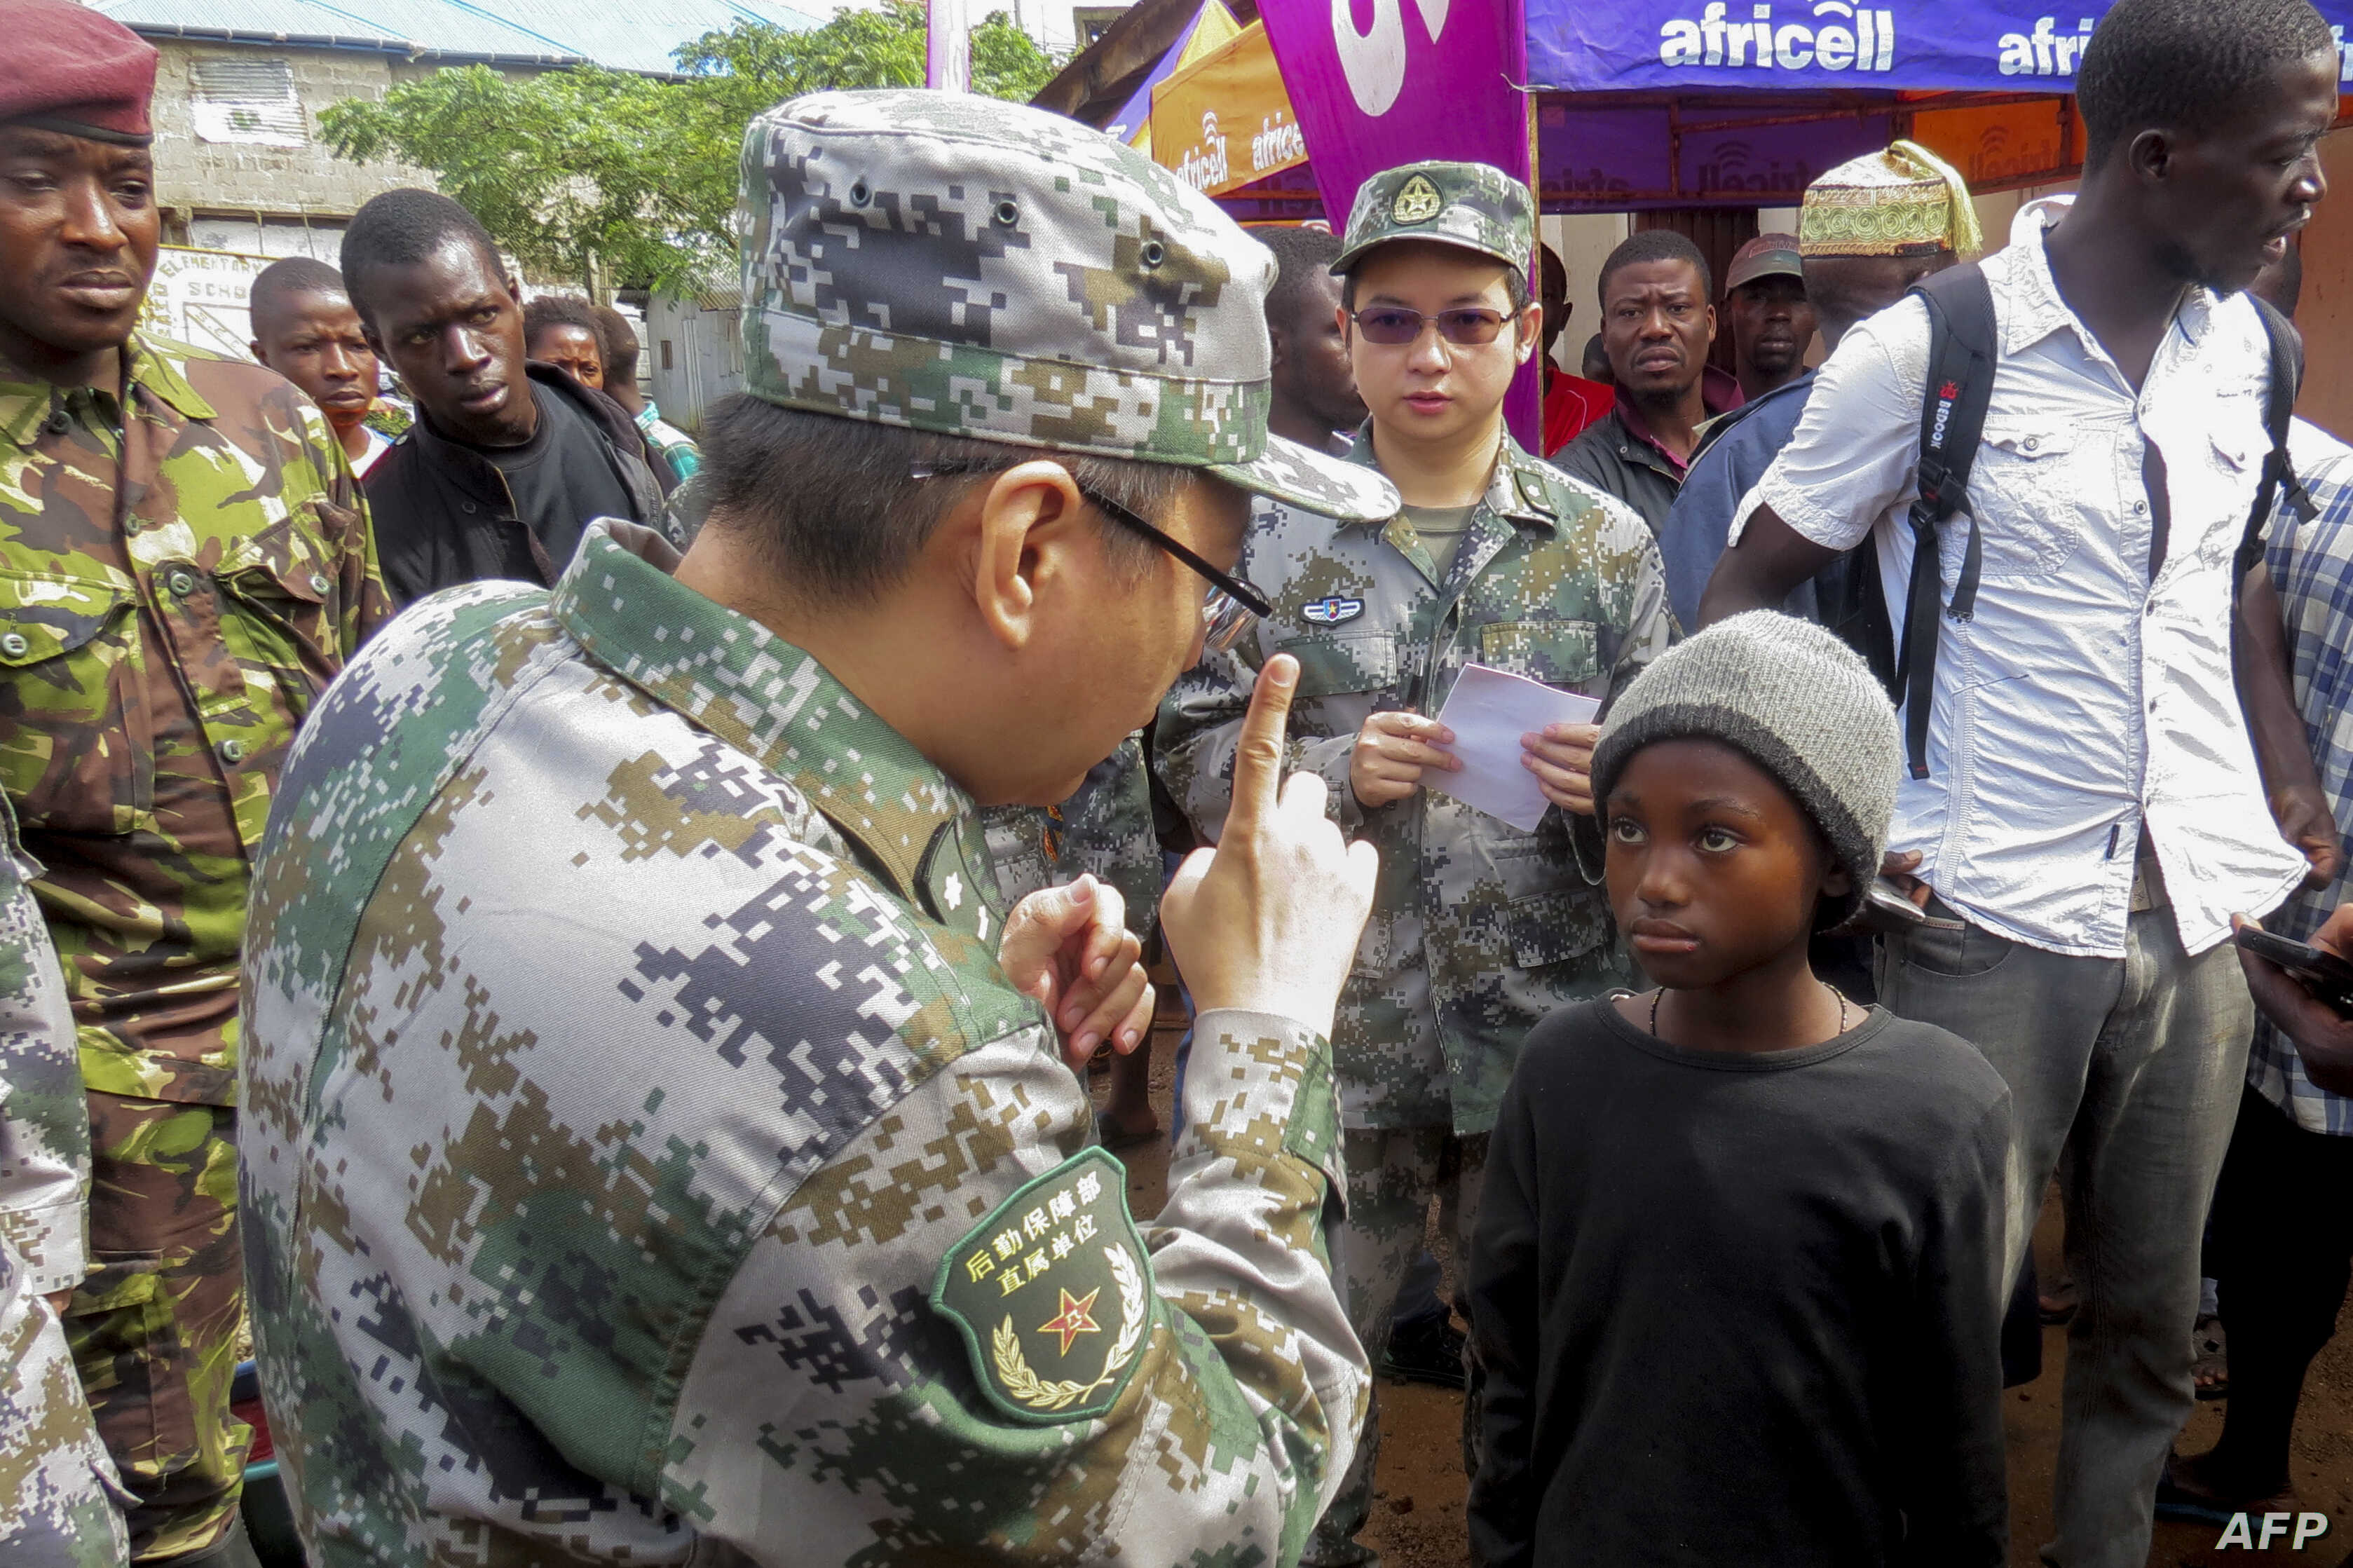 FILE - A medical team from the Chinese People's Liberation Army (PLA) meets with local Sierra Leoneans as they arrive close to the site of a mudslide in Sugar Loaf mountain, in Freetown, Aug. 17, 2017.